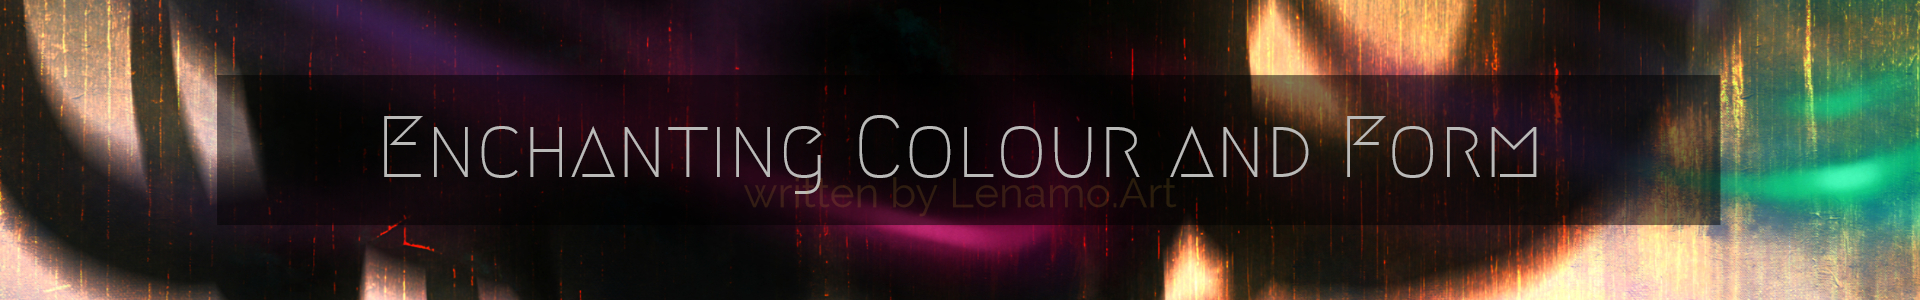 Enchanting Colour and Form - Art Blog Header